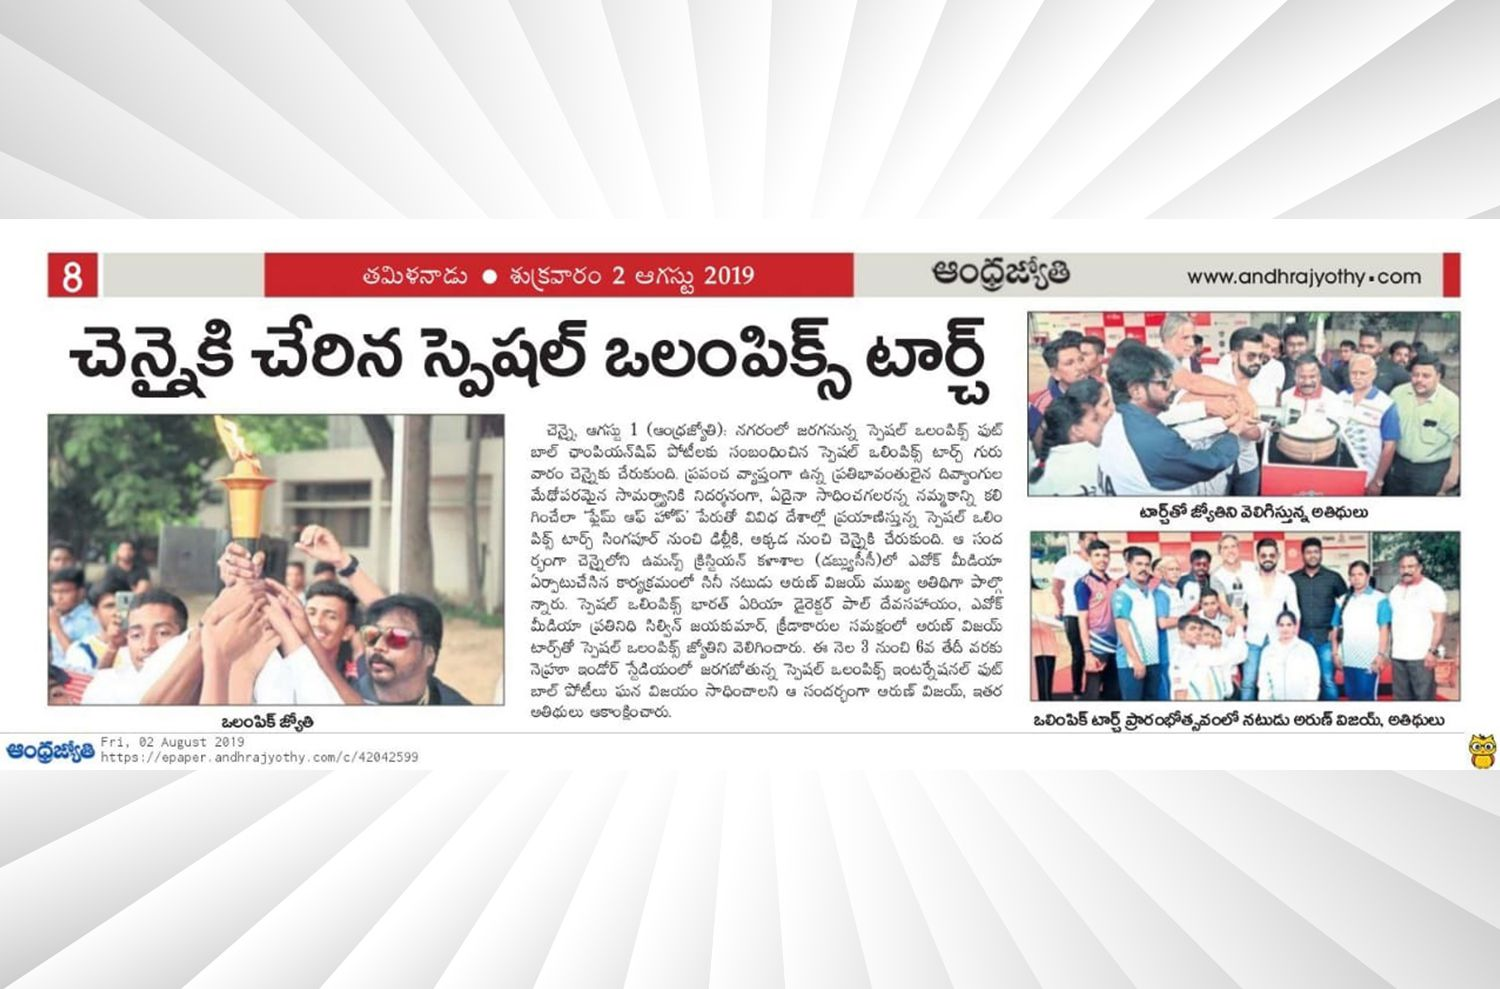 Special Olympics Andhra Jyothi